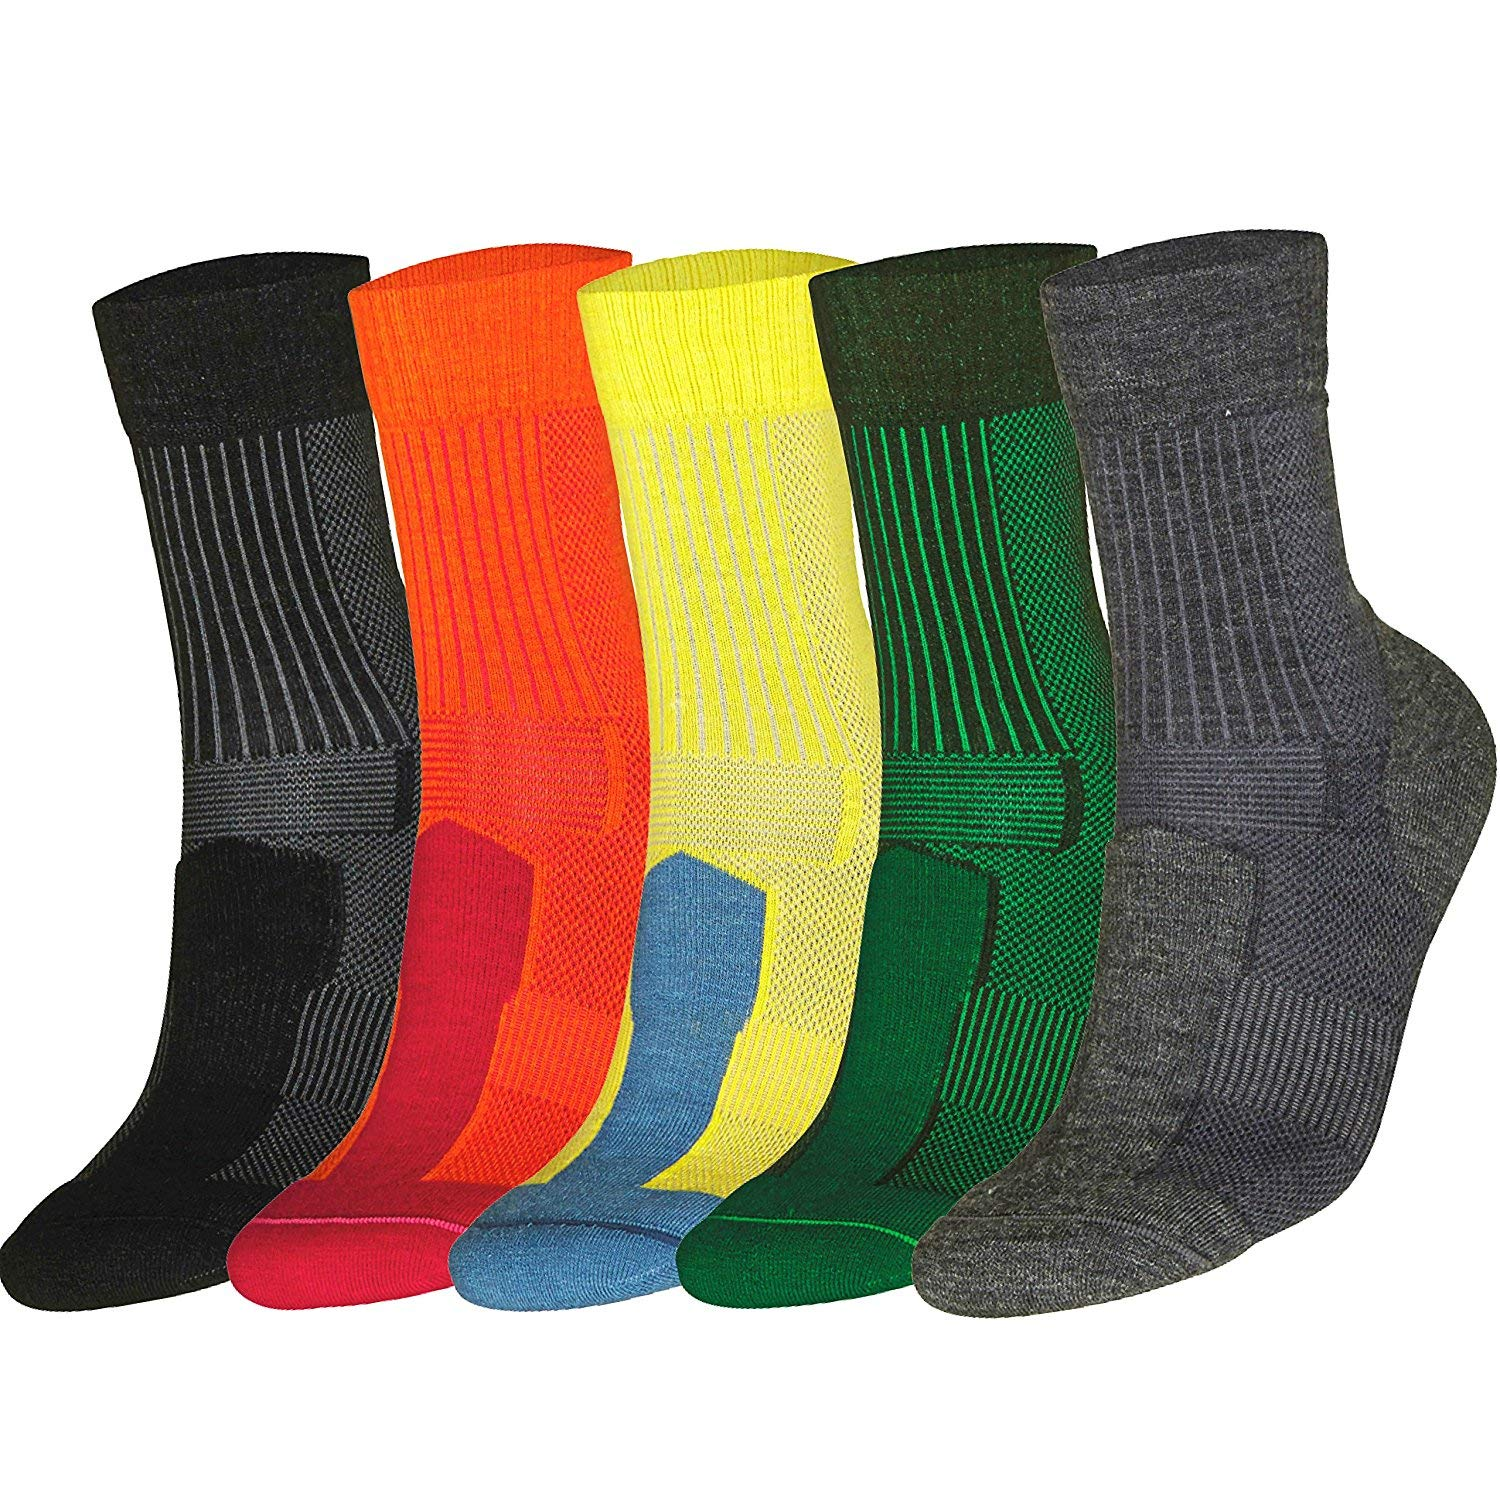 Merino Wool Light 1/4 Crew Socks for Hiking